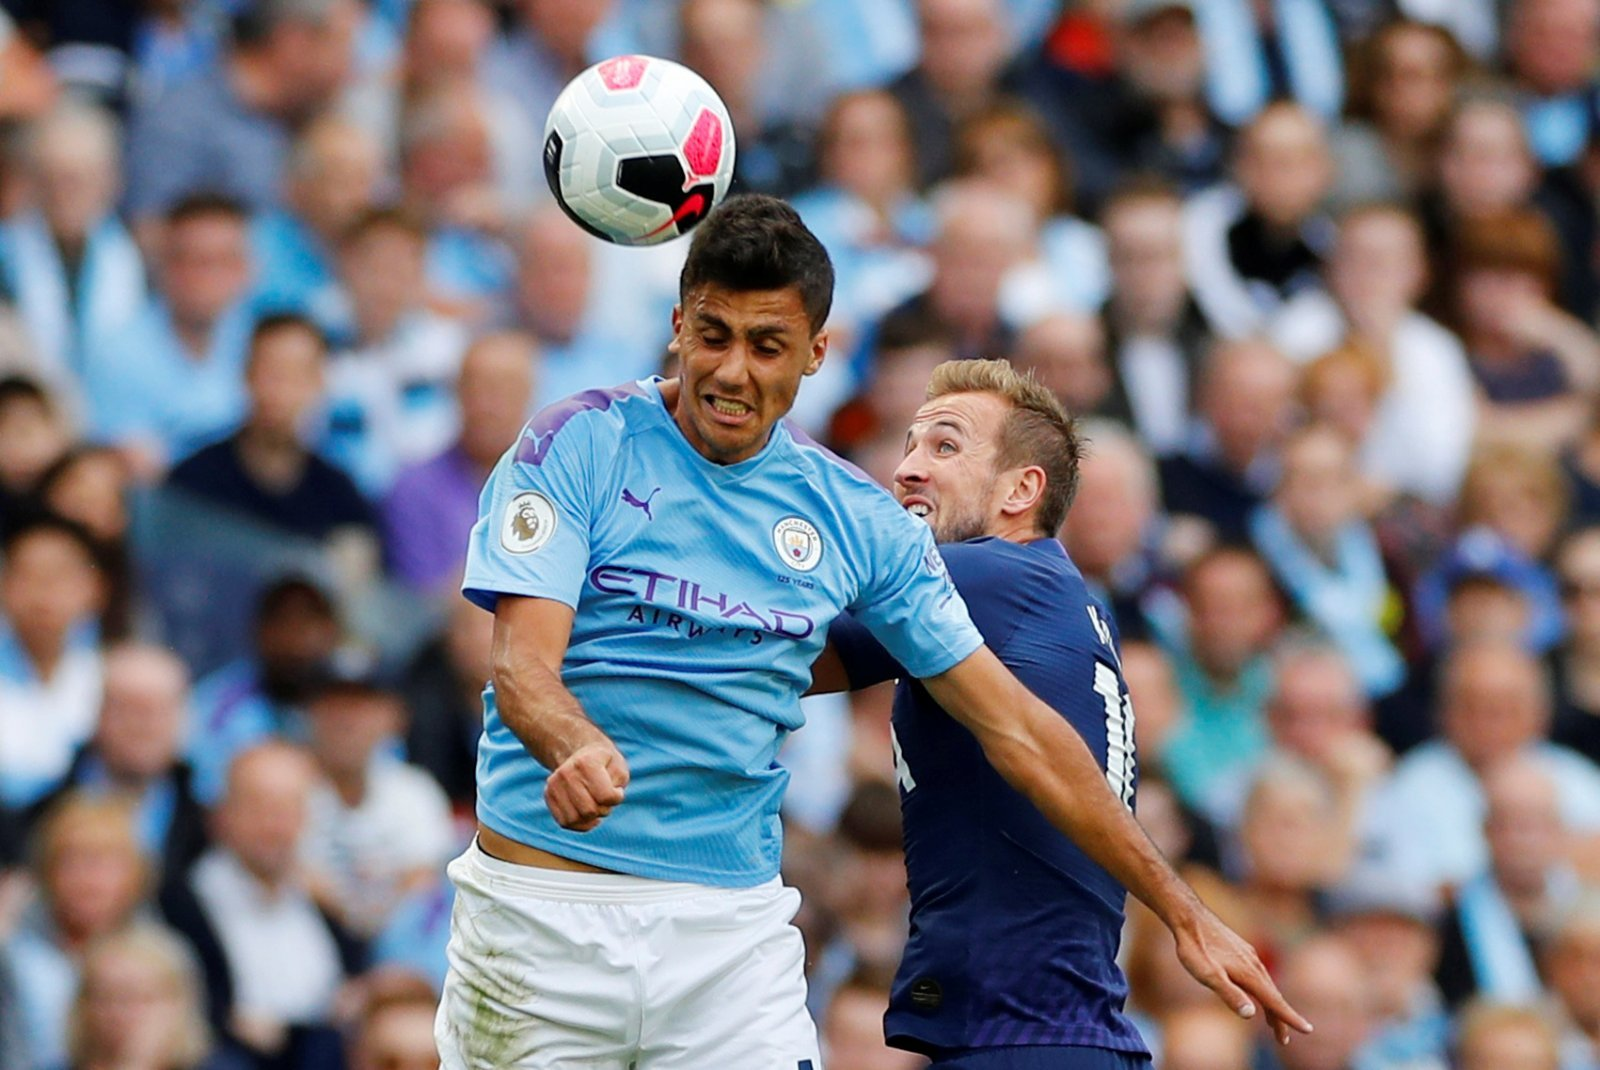 Manchester City: Fans gush over 'phenomenal' Rodri performance against Burnley